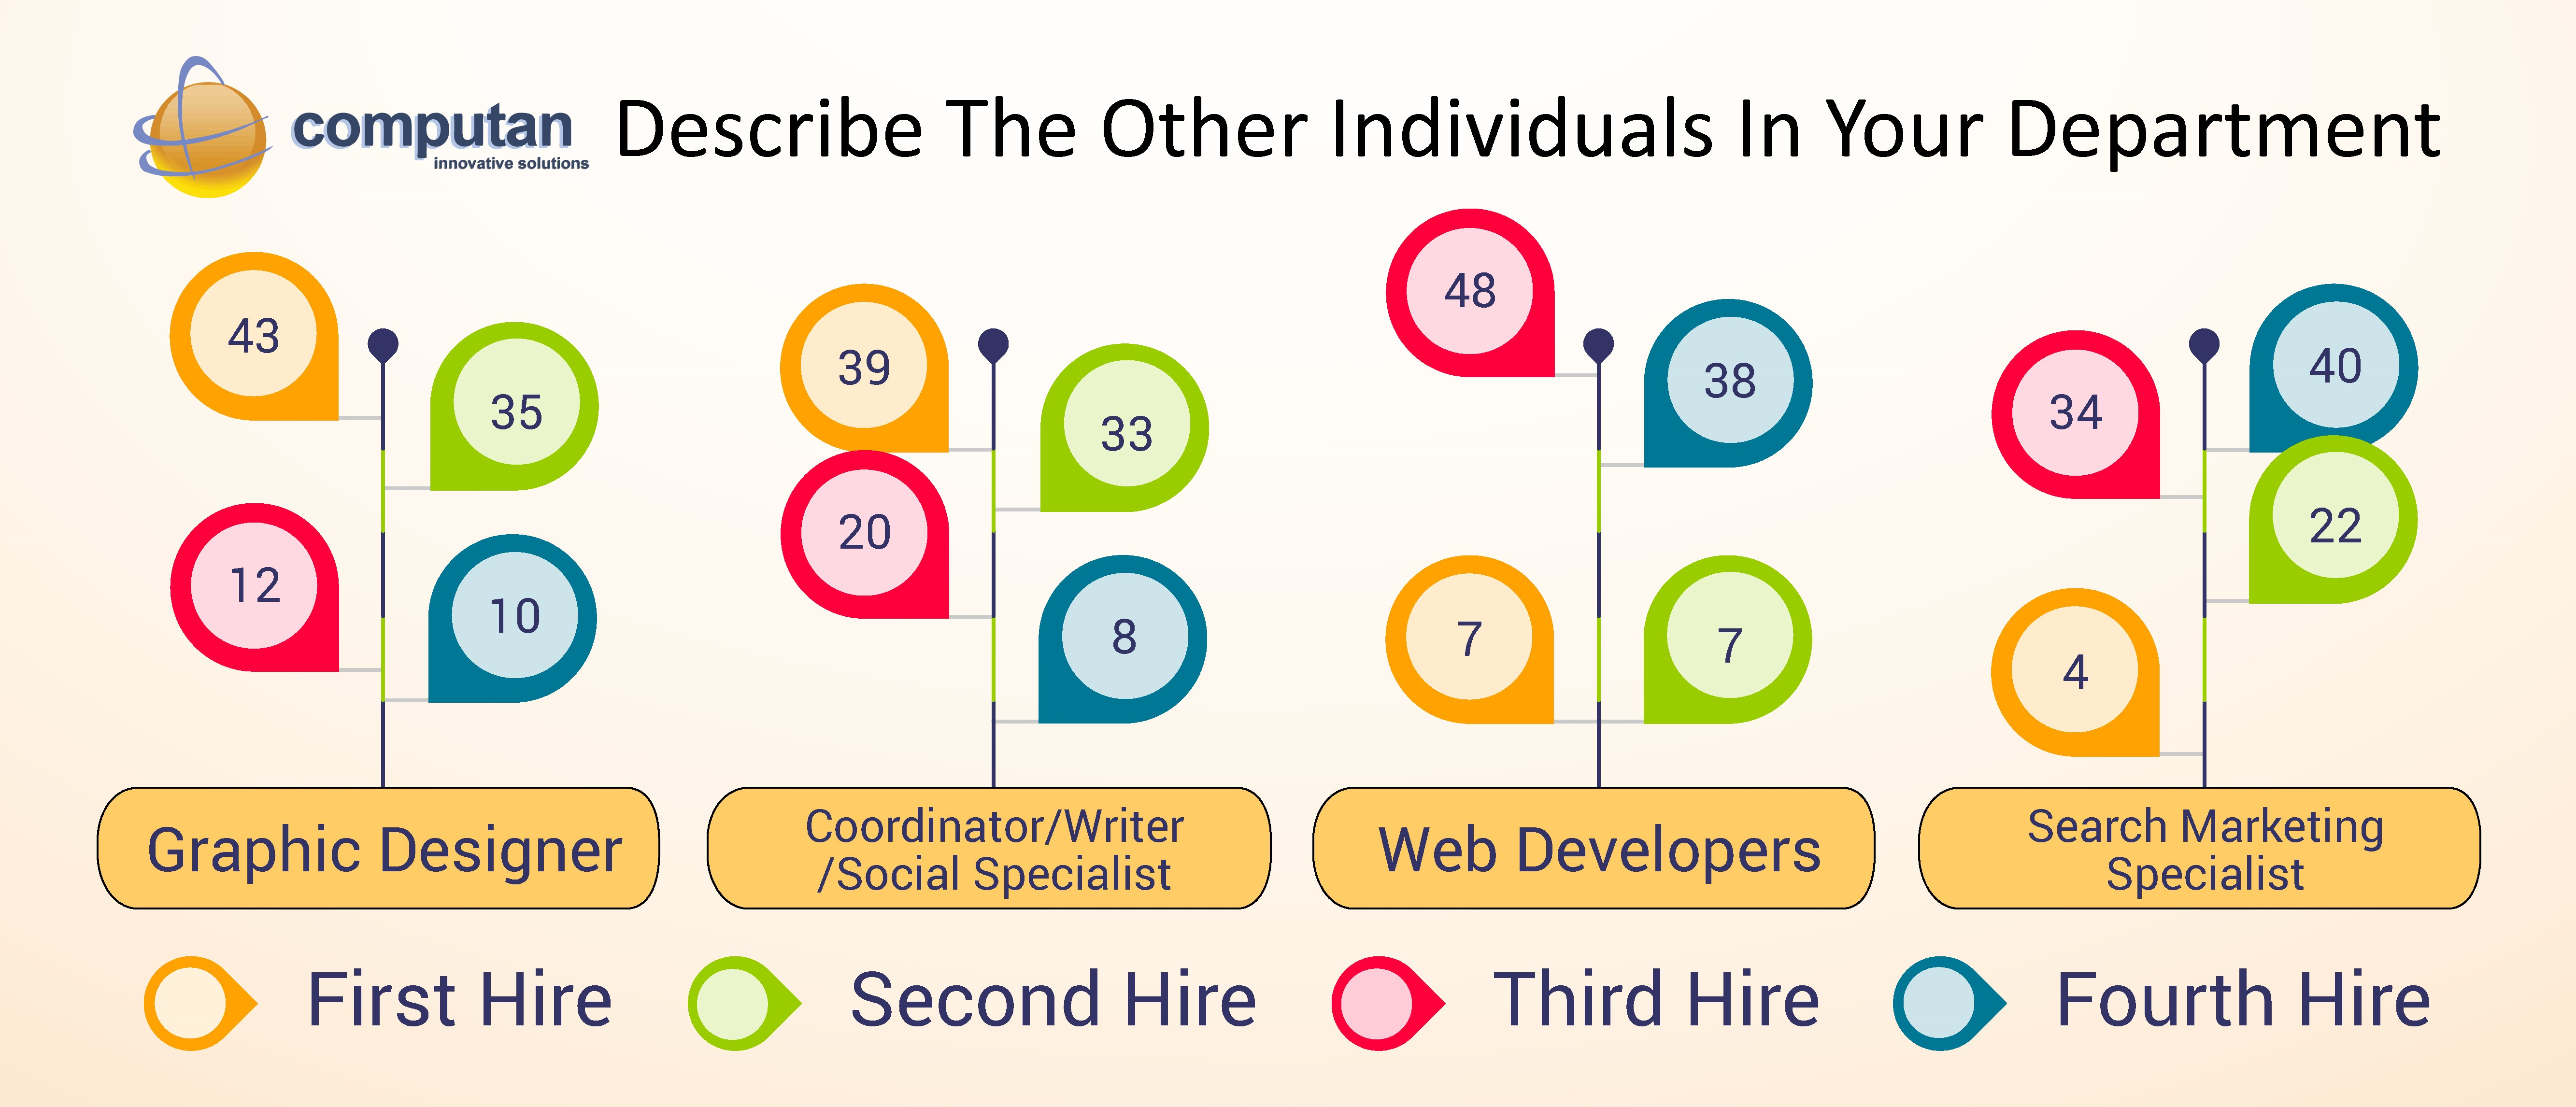 Outsource_Digital_Marketing_Blog_-_Describe_the_other_individuals_in_your_marketing_department_Chart